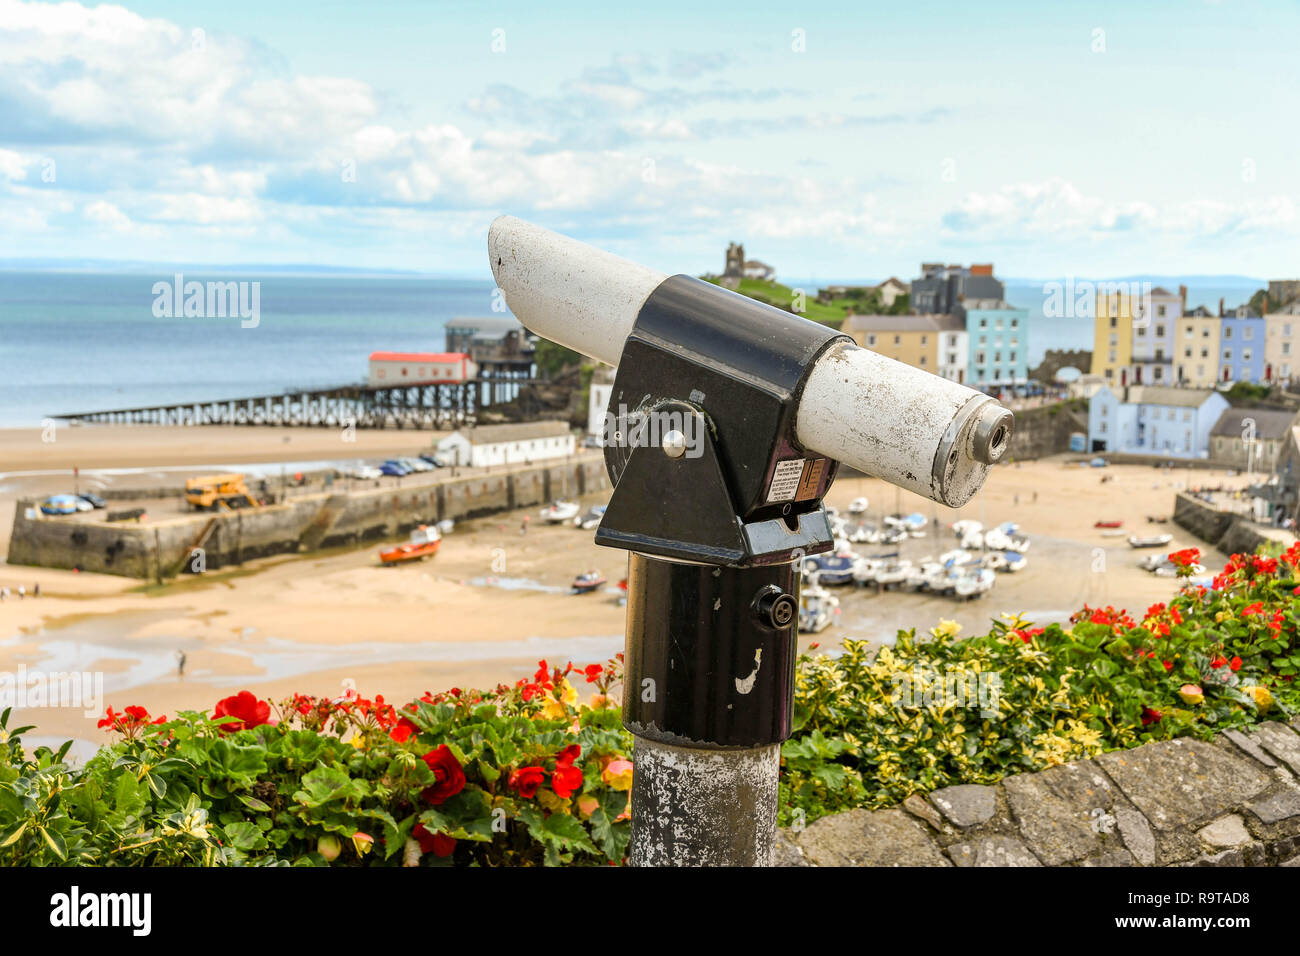 TENBY, PEMBROKESHIRE, WALES - AUGUST 2018: Coin-operated binoculars for visitors to view the scenery in Tenby, West Wales. - Stock Image